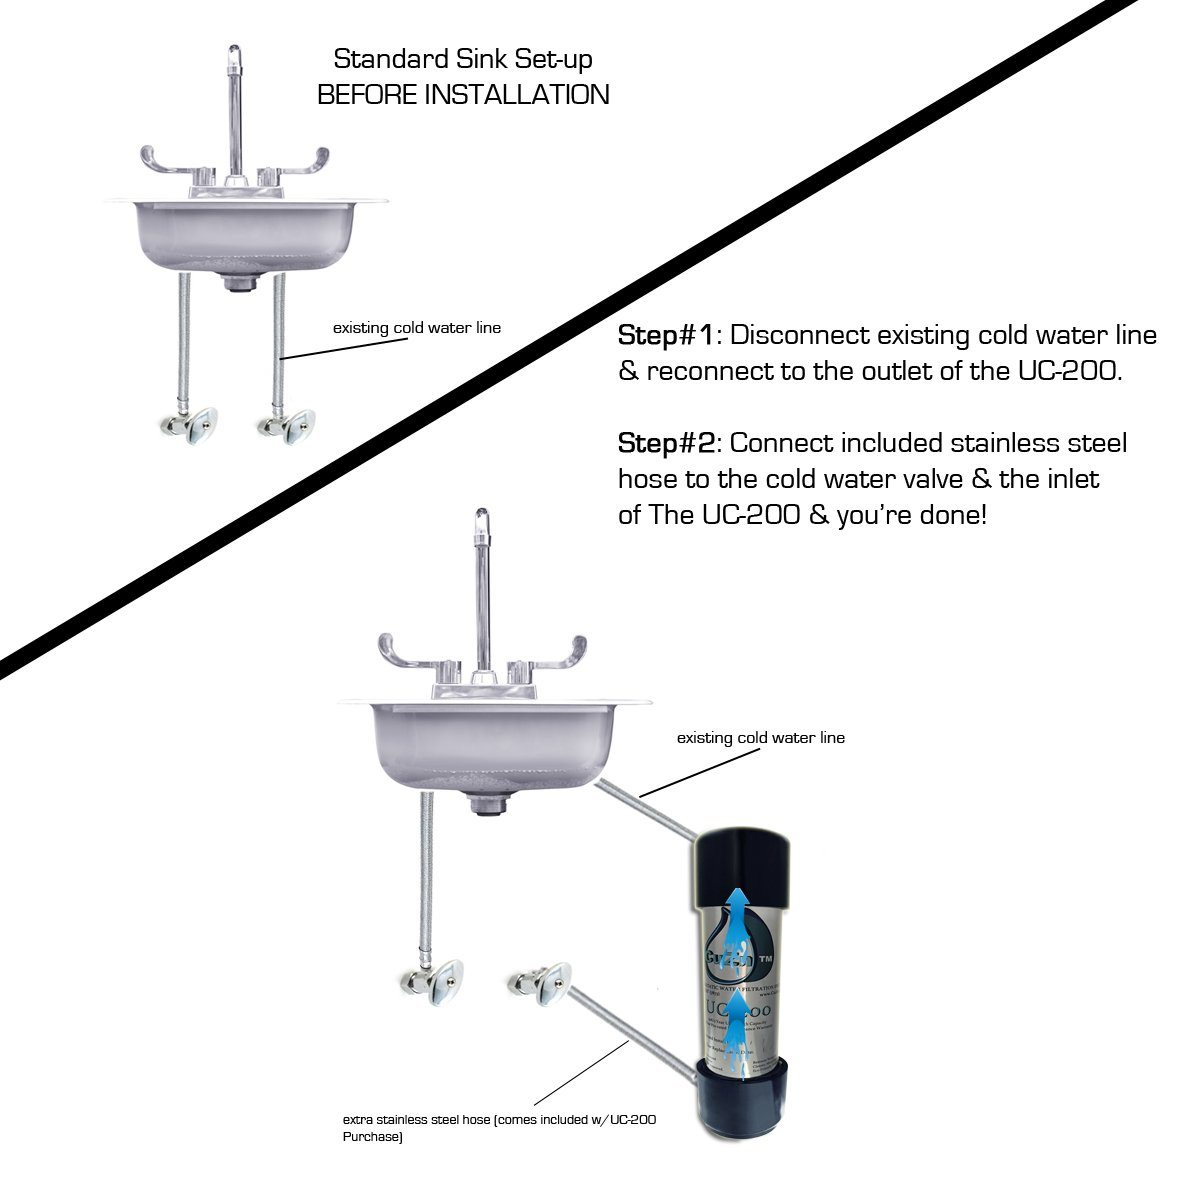 CuZn UC-200 Under Counter Water Filter - 50K Ultra High Capacity - Made in USA by CuZn (Image #3)